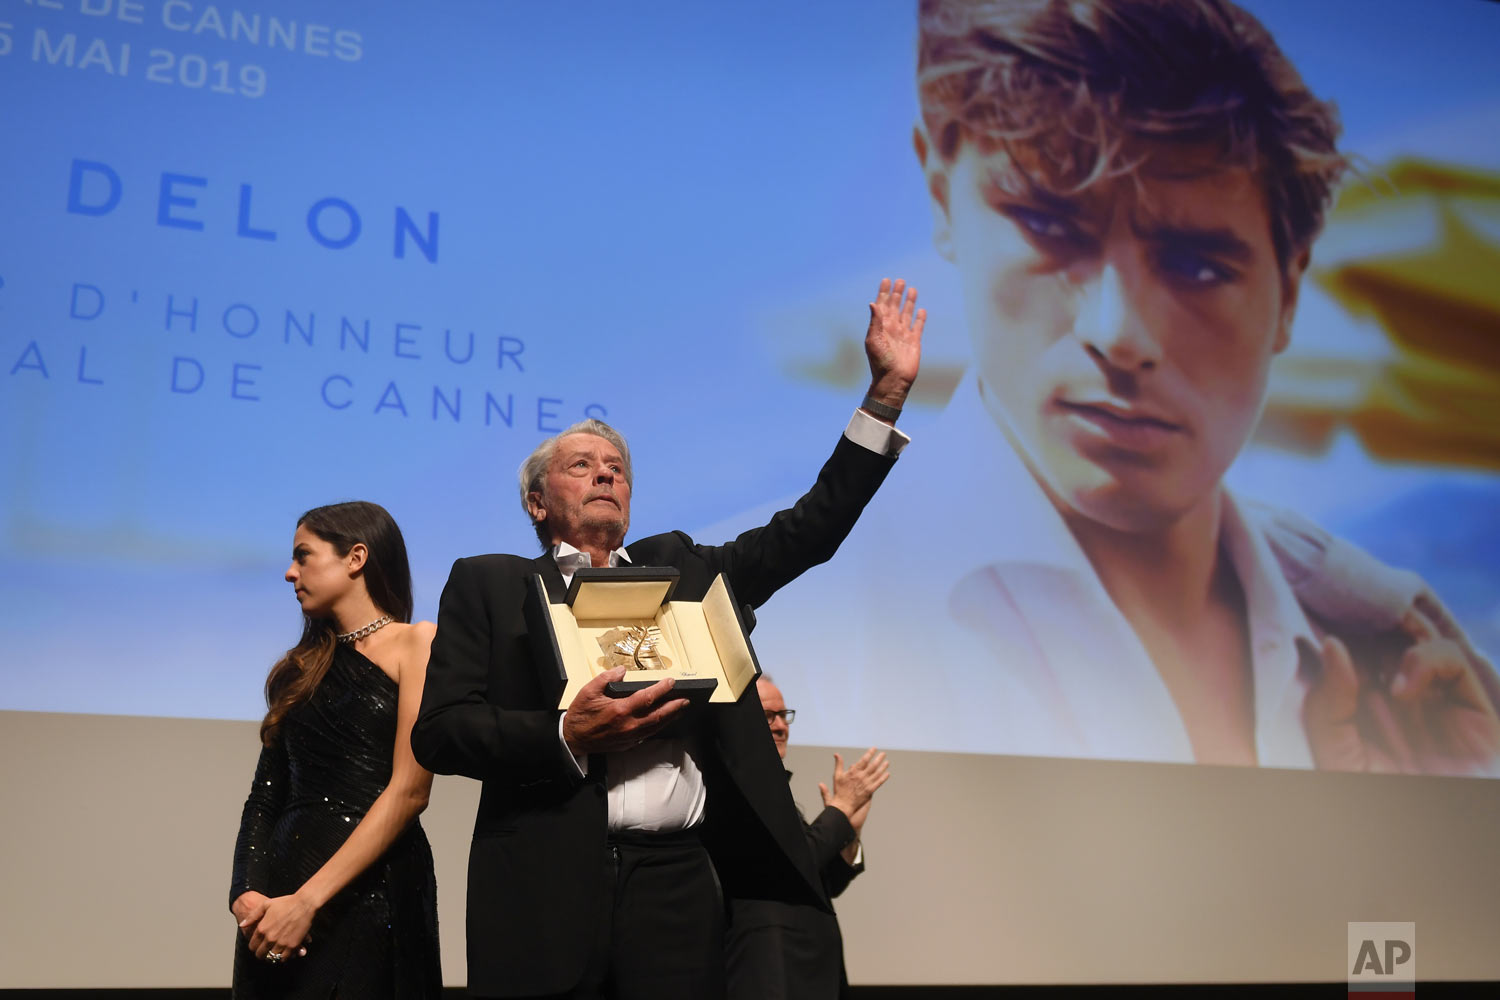 Alain Delon, centre, holds his honorary Palme D'Or award at the 72nd international film festival, Cannes, southern France, May 19, 2019. (Photo by Arthur Mola/Invision/AP)